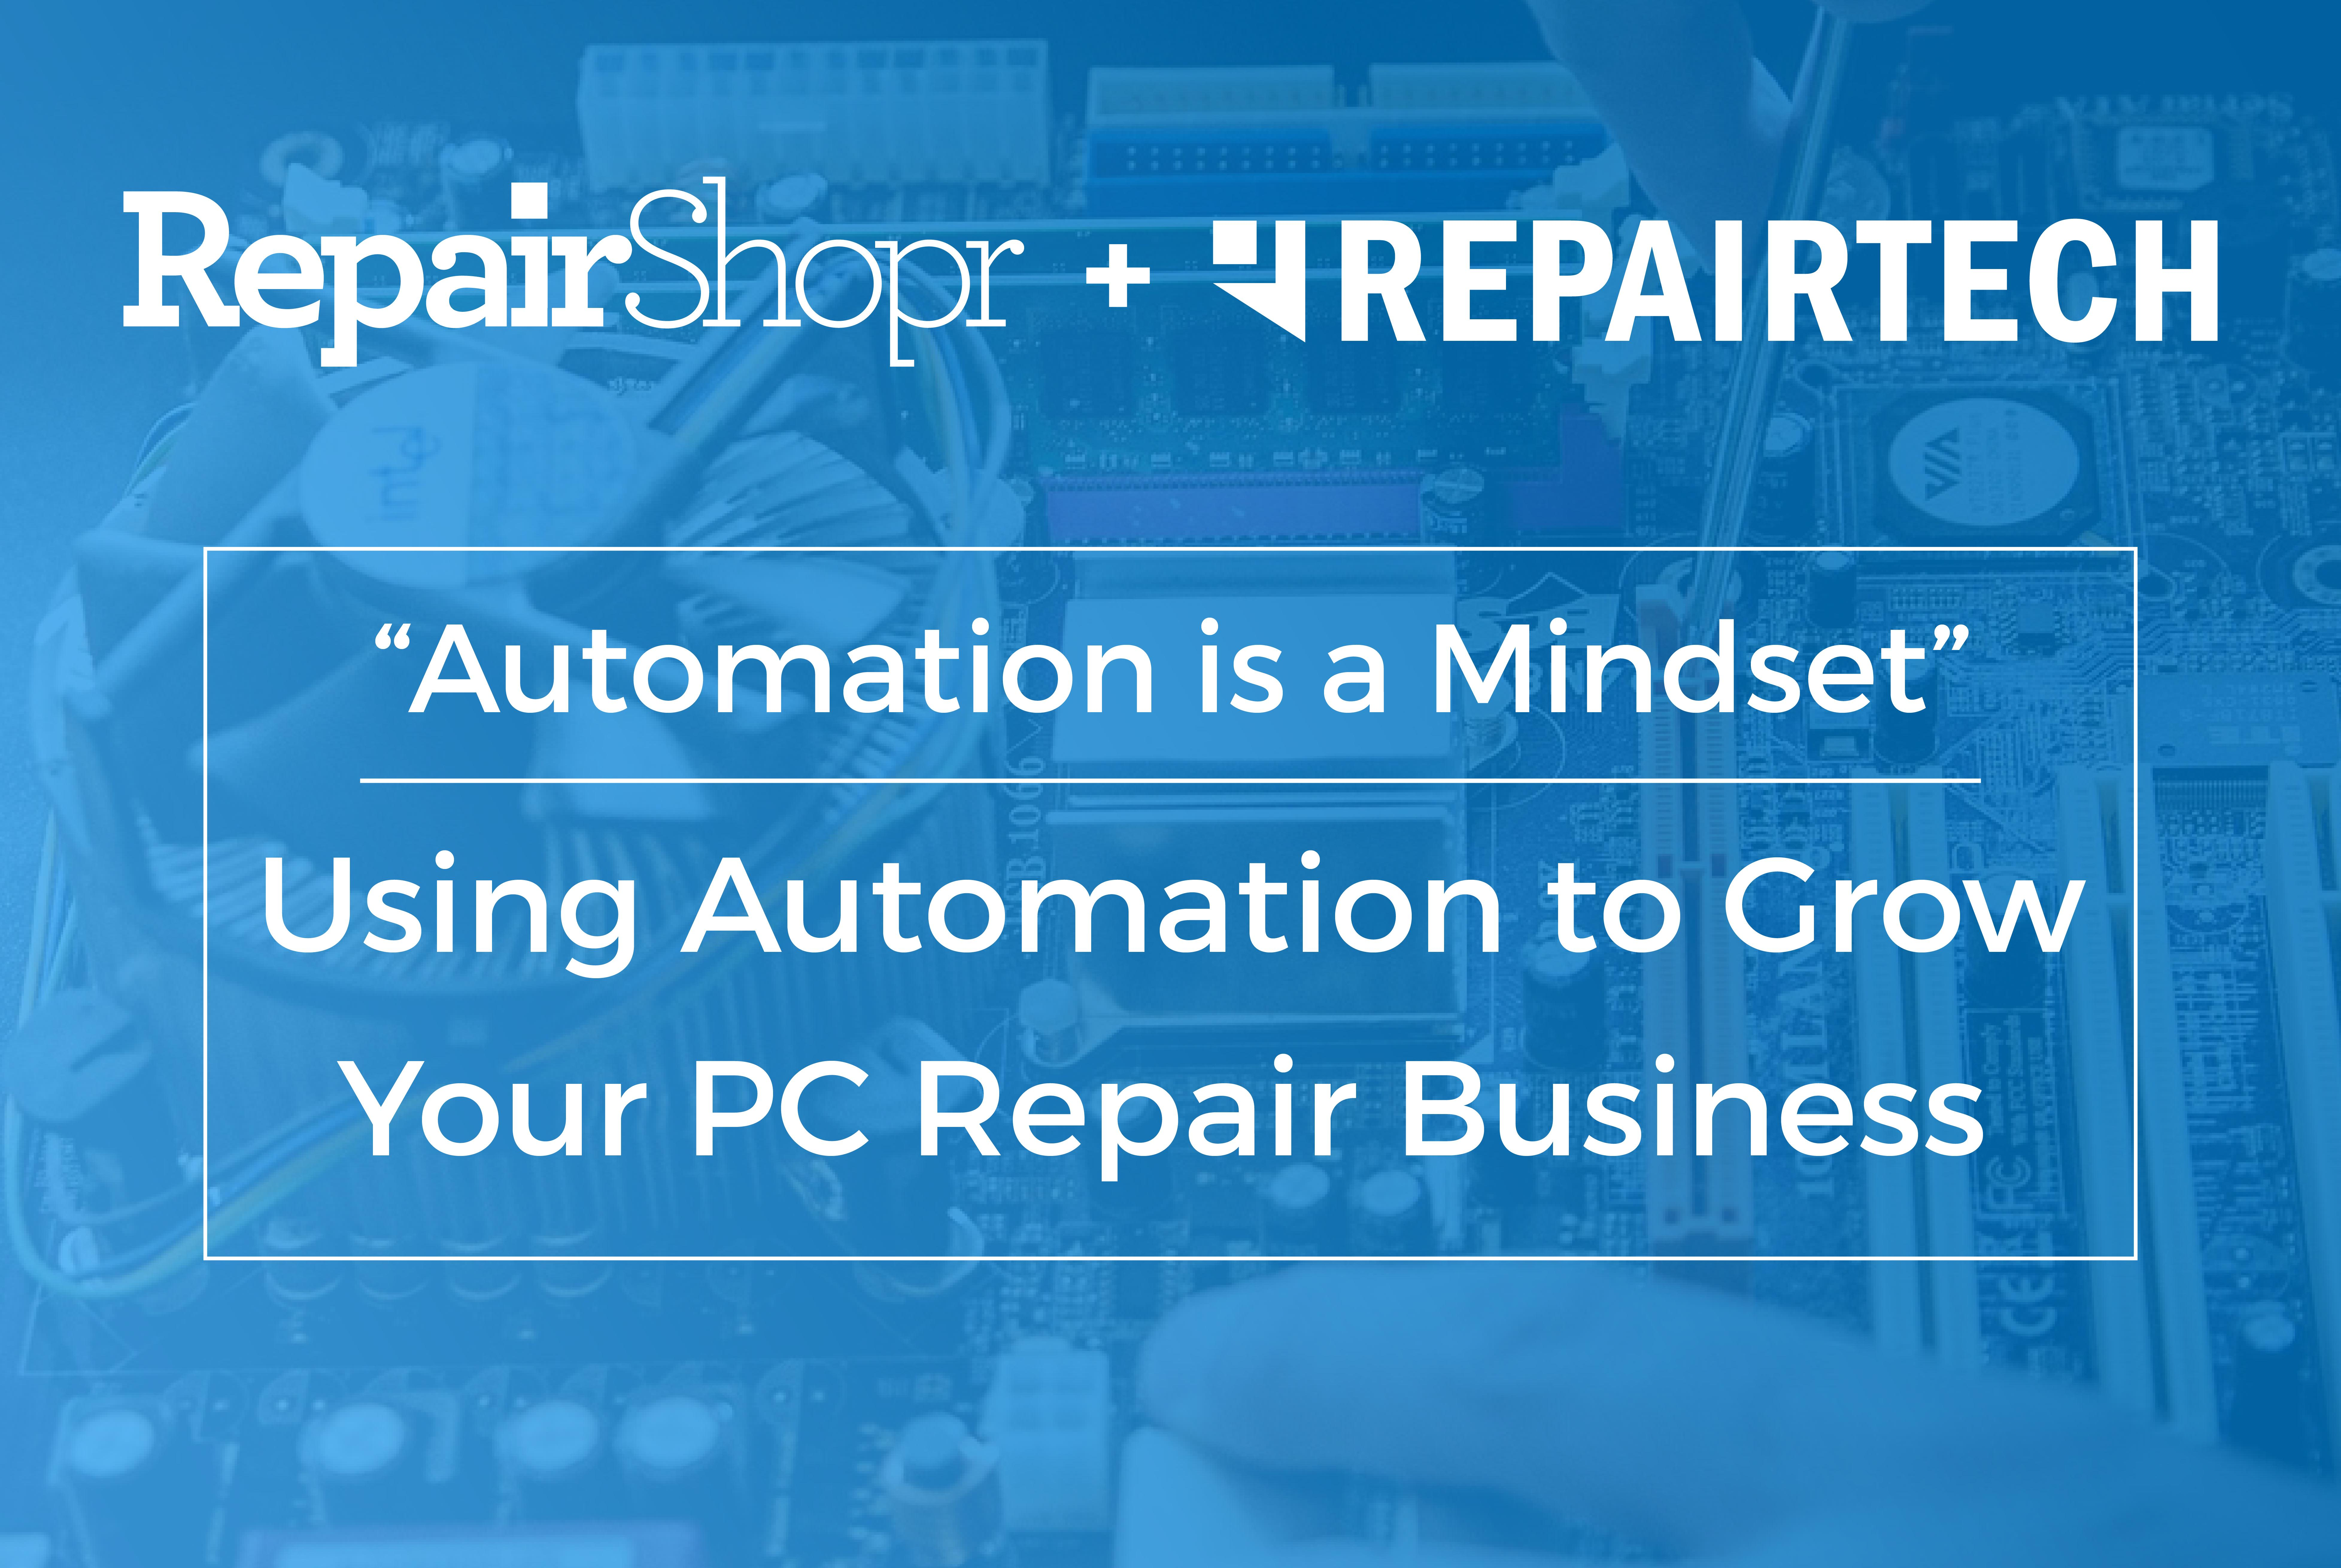 """""""Automation is a mindset."""" 